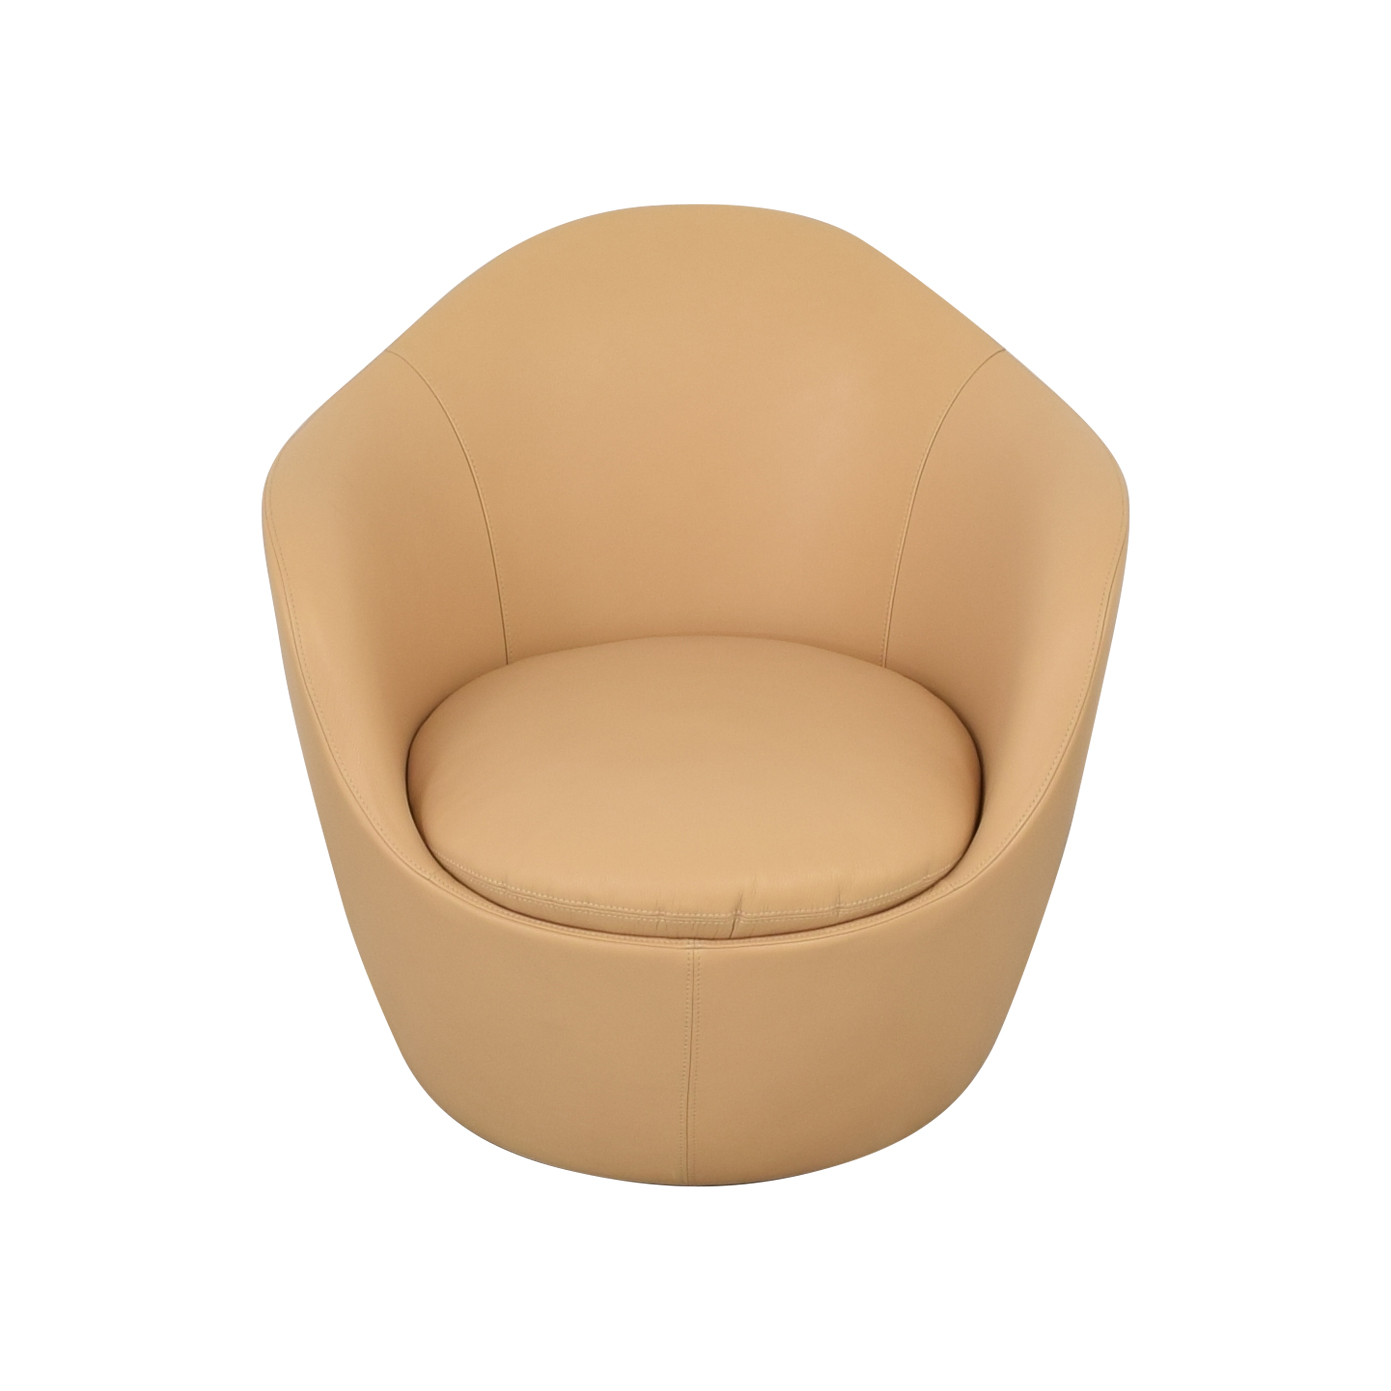 buy Design Within Reach Lína Swivel Chair Design Within Reach Chairs